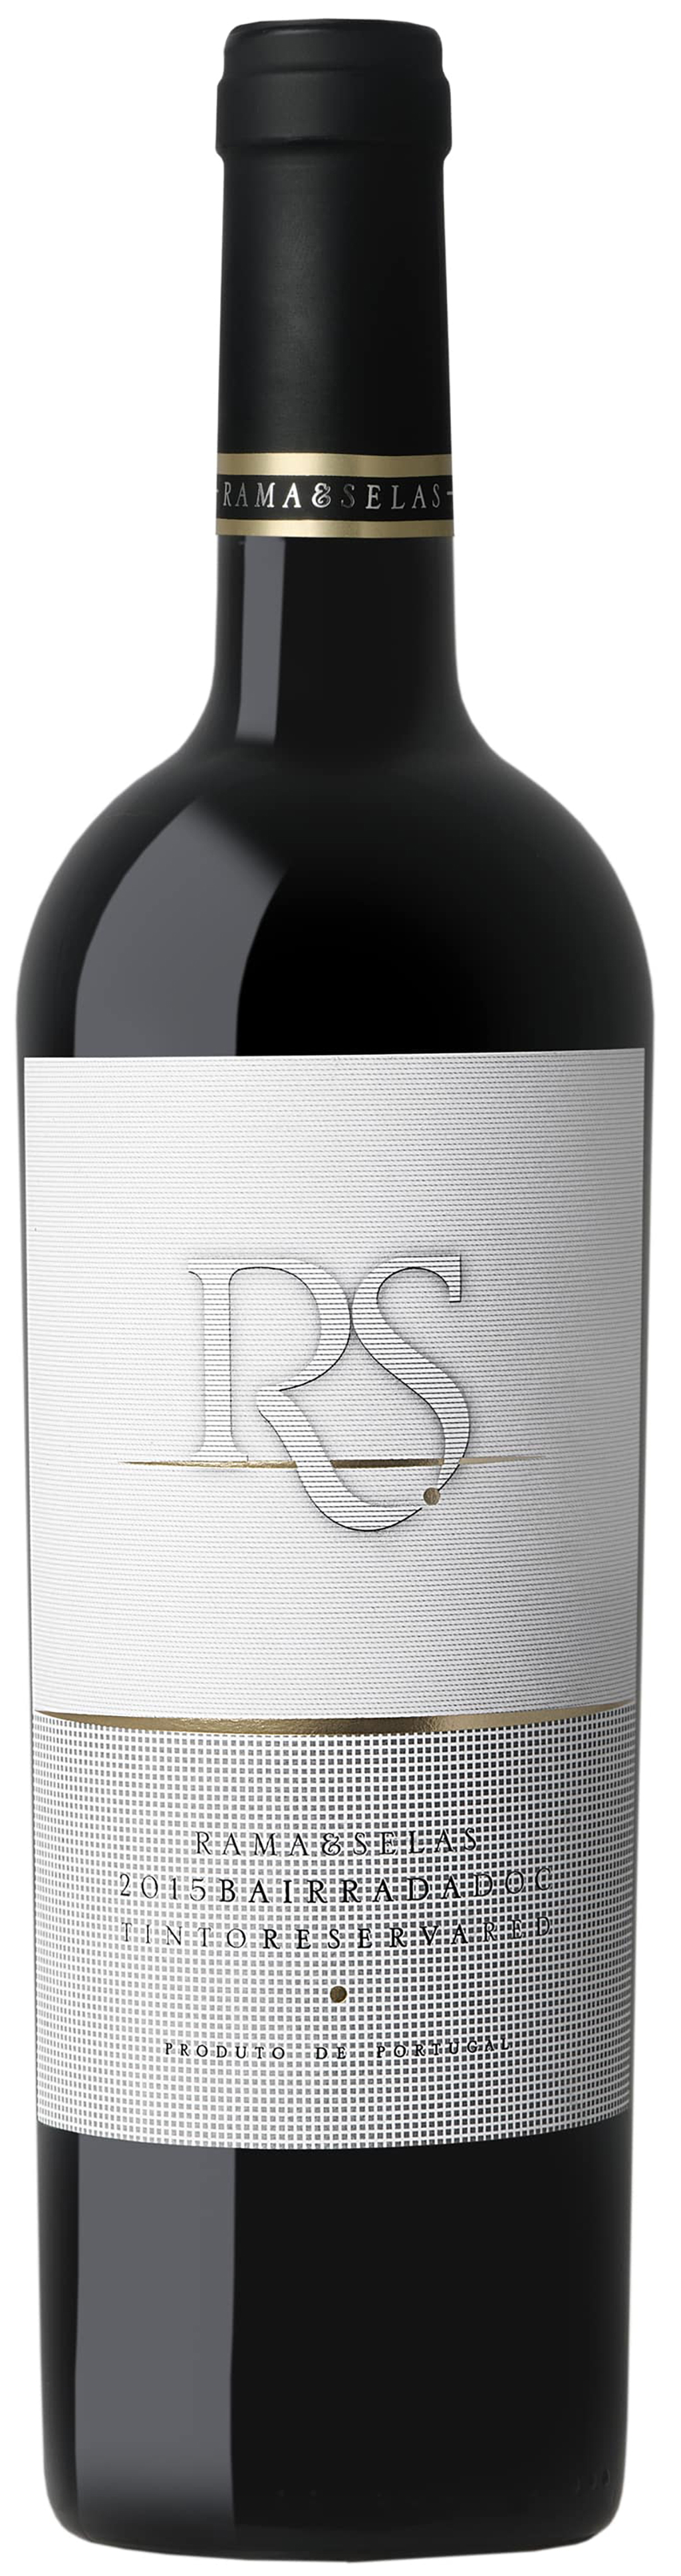 RS Reserva Tinto 2015